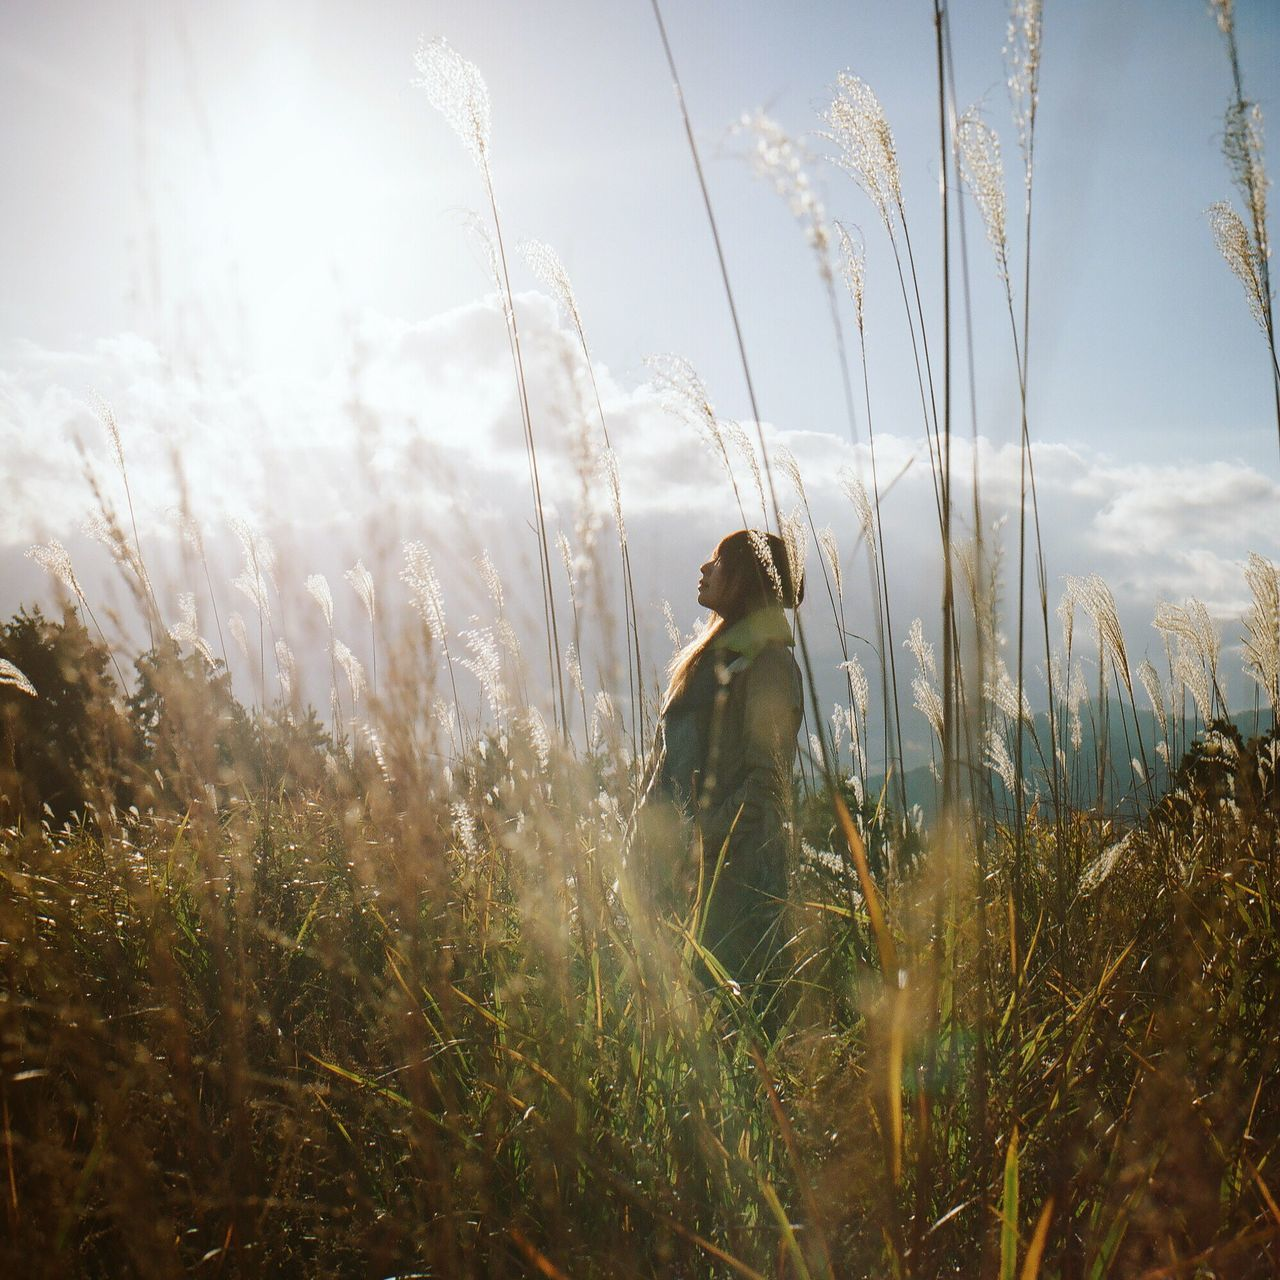 field, grass, one person, nature, sky, growth, outdoors, sunlight, day, young adult, people